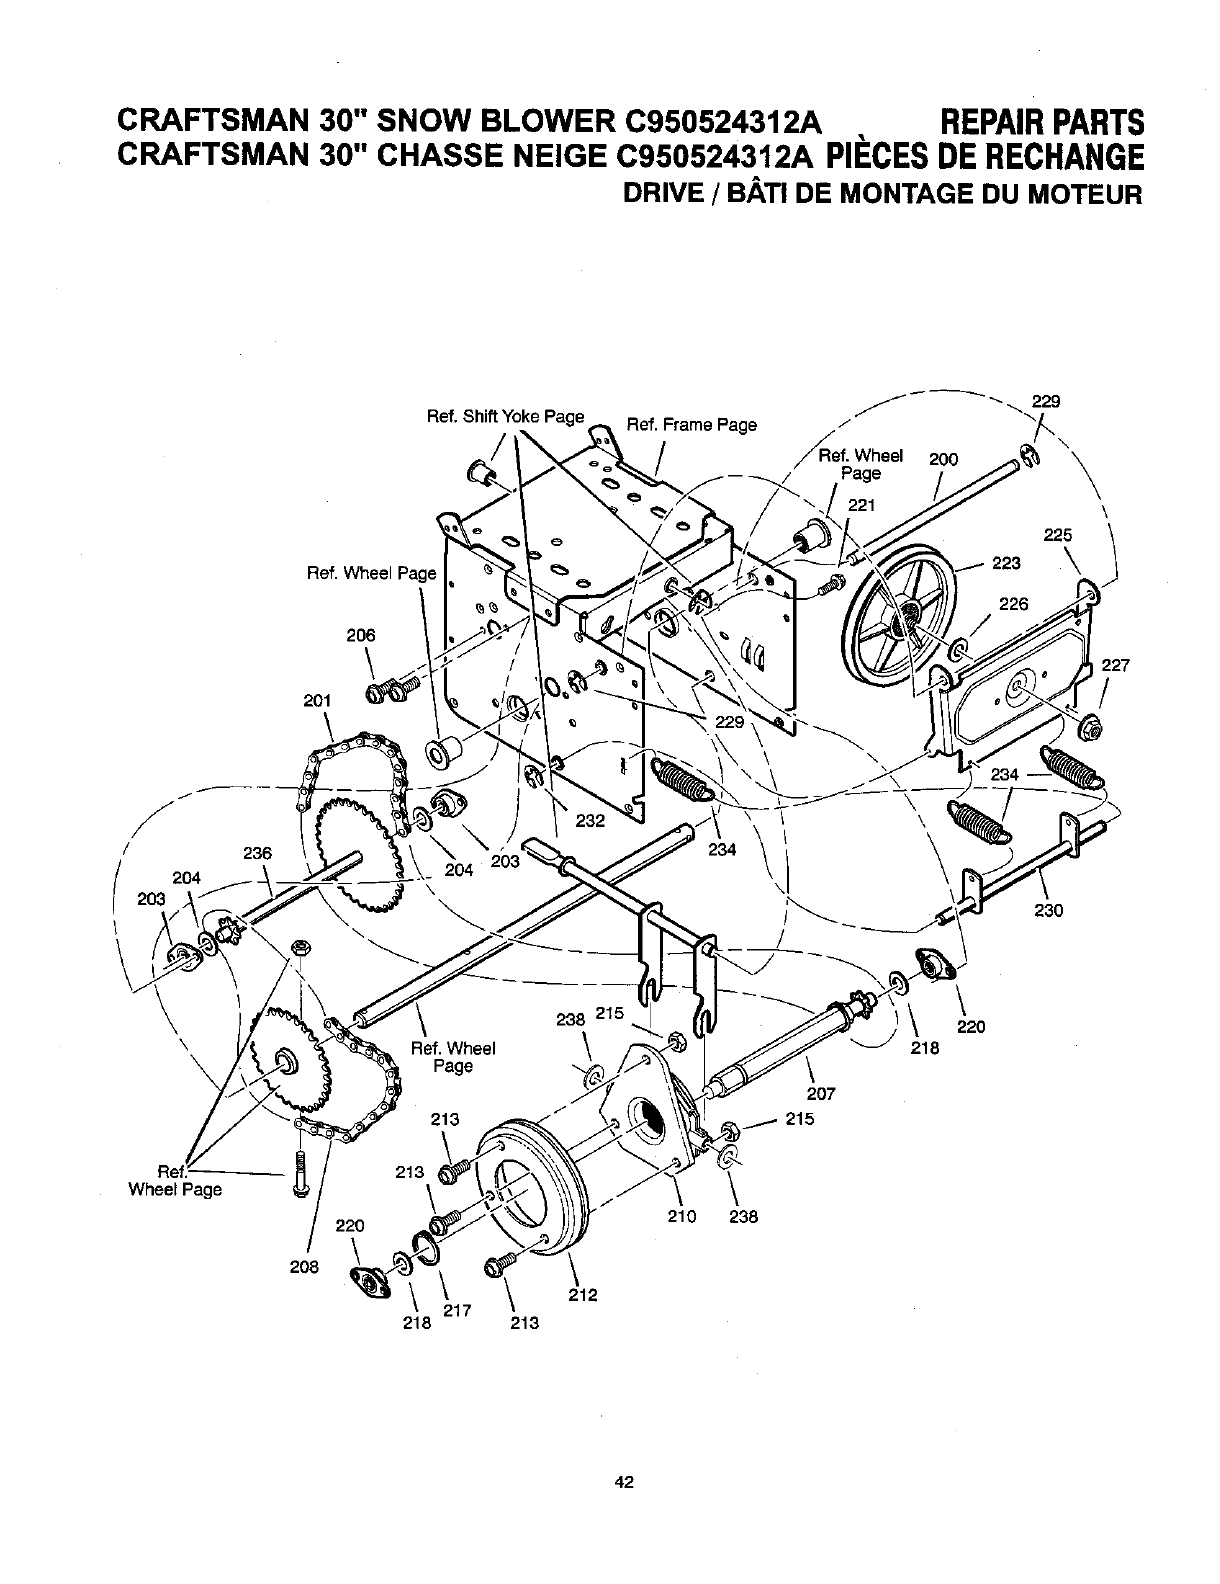 Craftsman C950524312A User Manual DUAL STAGE SNOW BLOWER